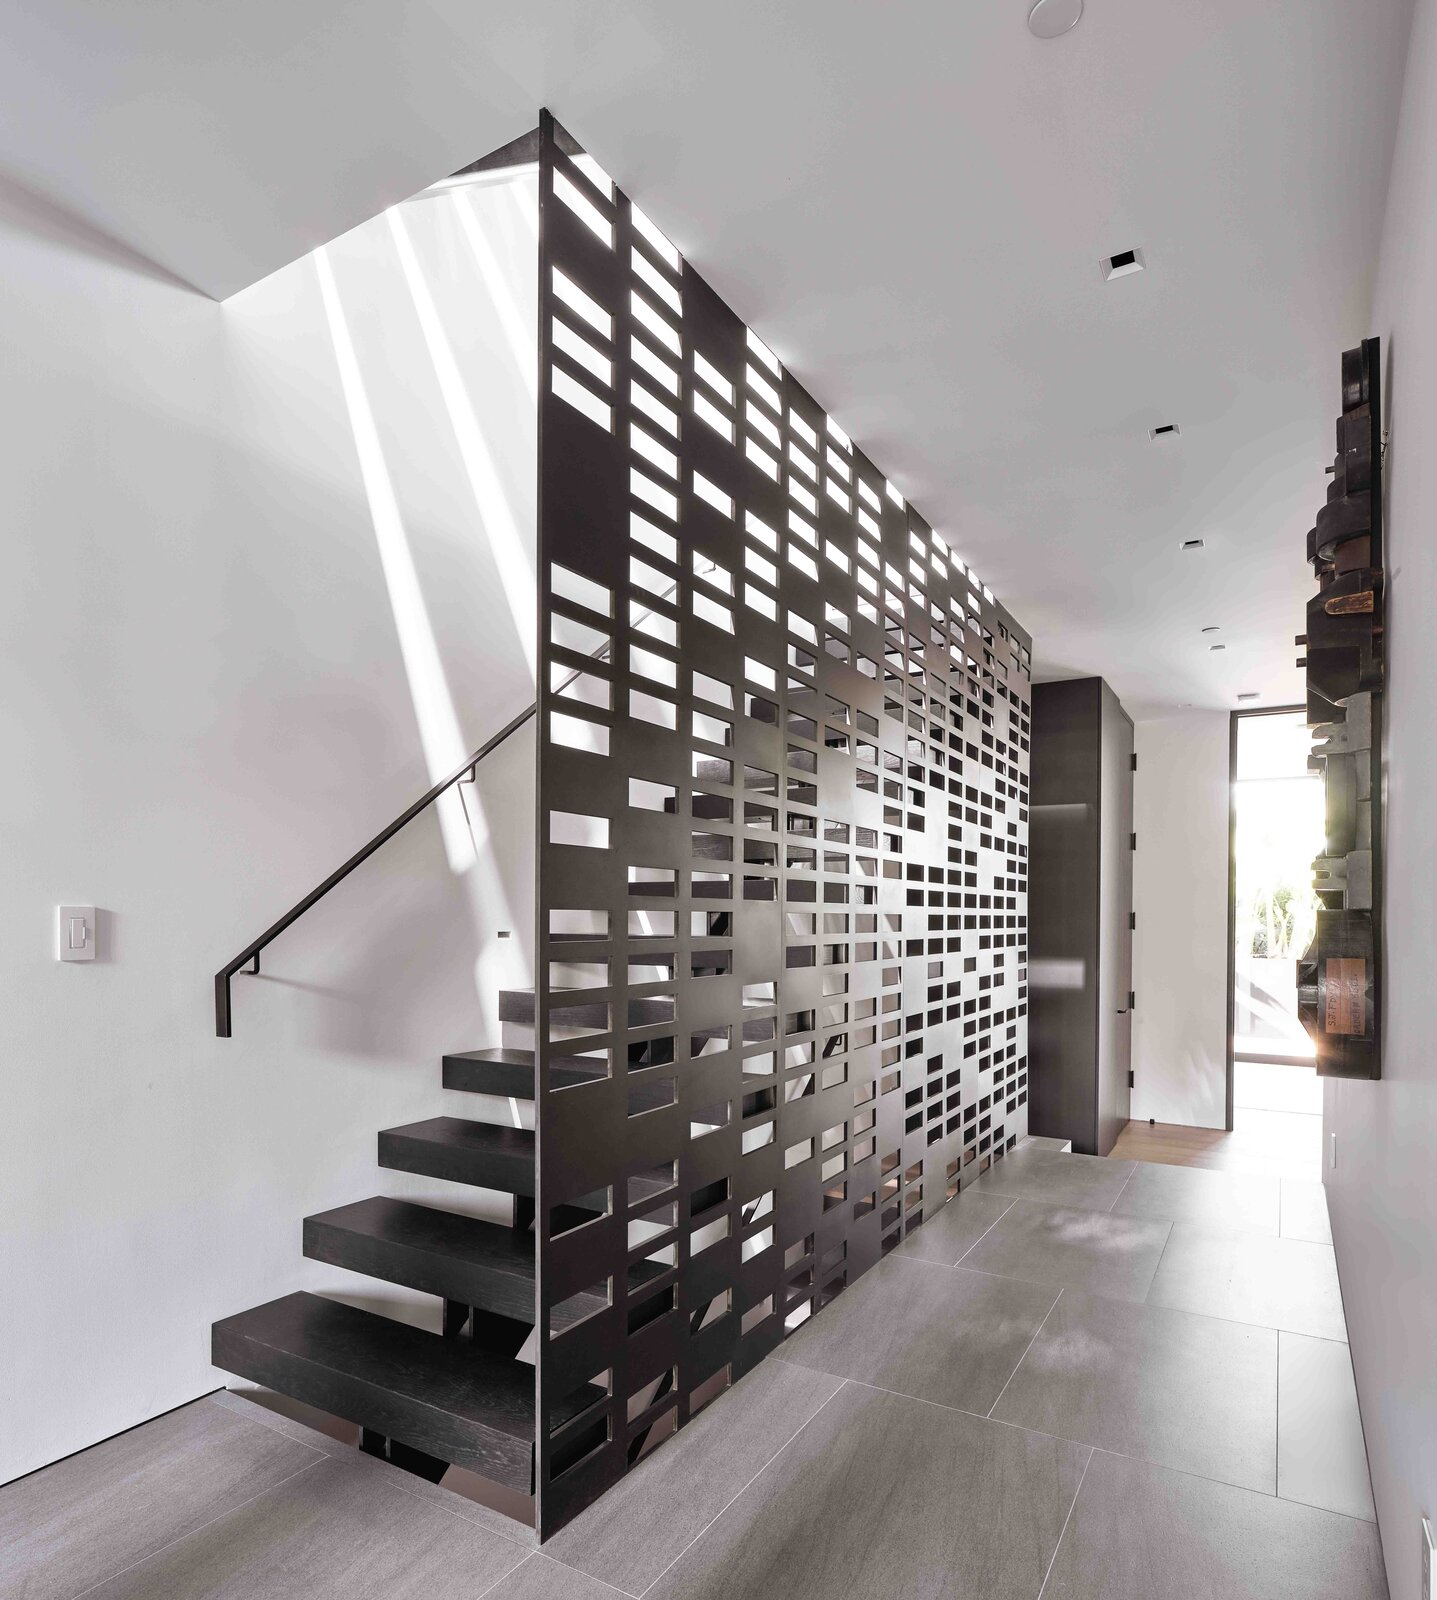 """Inside the entryway, a custom steel staircase and screen by <span style=""""font-family: Theinhardt, -apple-system, BlinkMacSystemFont, &quot;Segoe UI&quot;, Roboto, Oxygen-Sans, Ubuntu, Cantarell, &quot;Helvetica Neue&quot;, sans-serif;"""">Melissa MacDonald Metalworks filters natural light from the skylight above. The home's inverted floor plan places each of the three bedrooms on the ground floor and the main living areas upstairs.</span>  Photo 2 of 19 in This Radiant San Francisco Residence Hits the Market at $6.8M"""